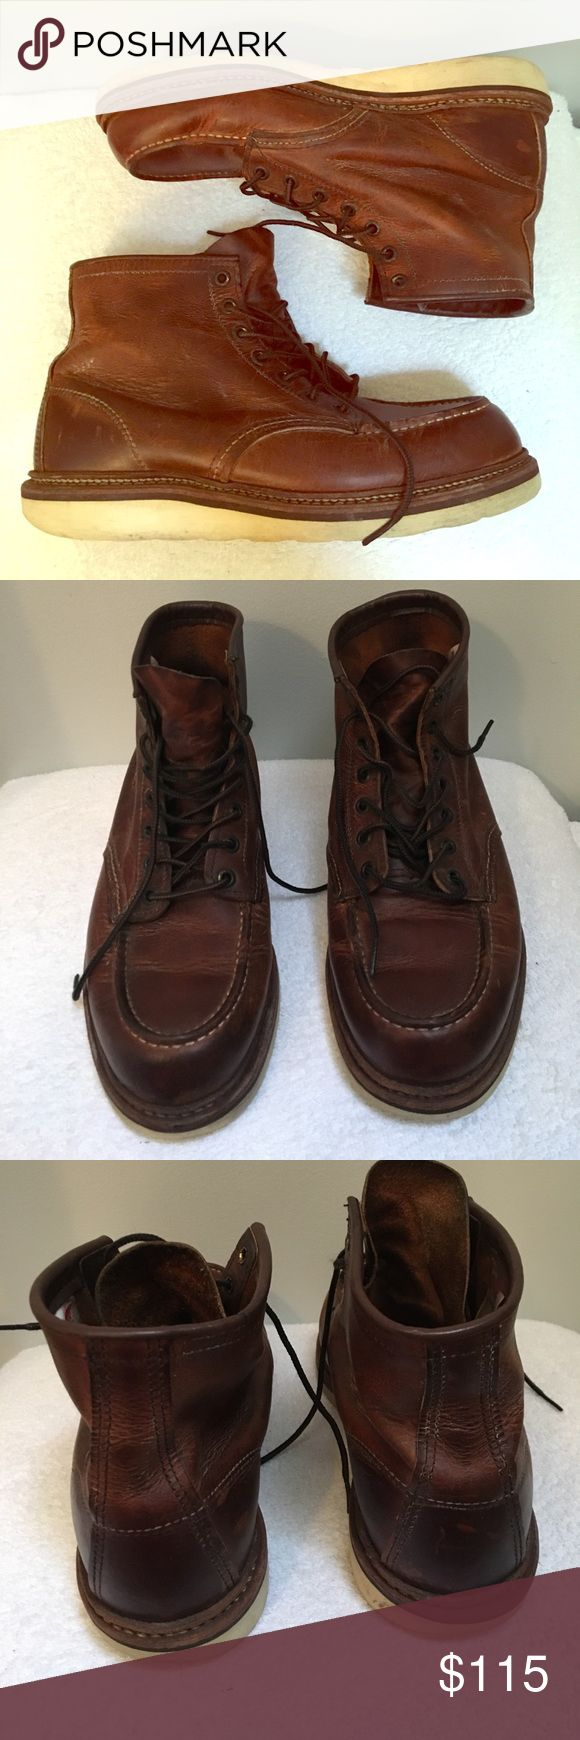 Red Wing steel-toed boots Authentic and beautiful Red Wing steel-toed boots! Normal wear to the shoes themselves and the soles. In good condition. Extremely hard to find for such a great price! Red Wing Shoes Shoes Boots